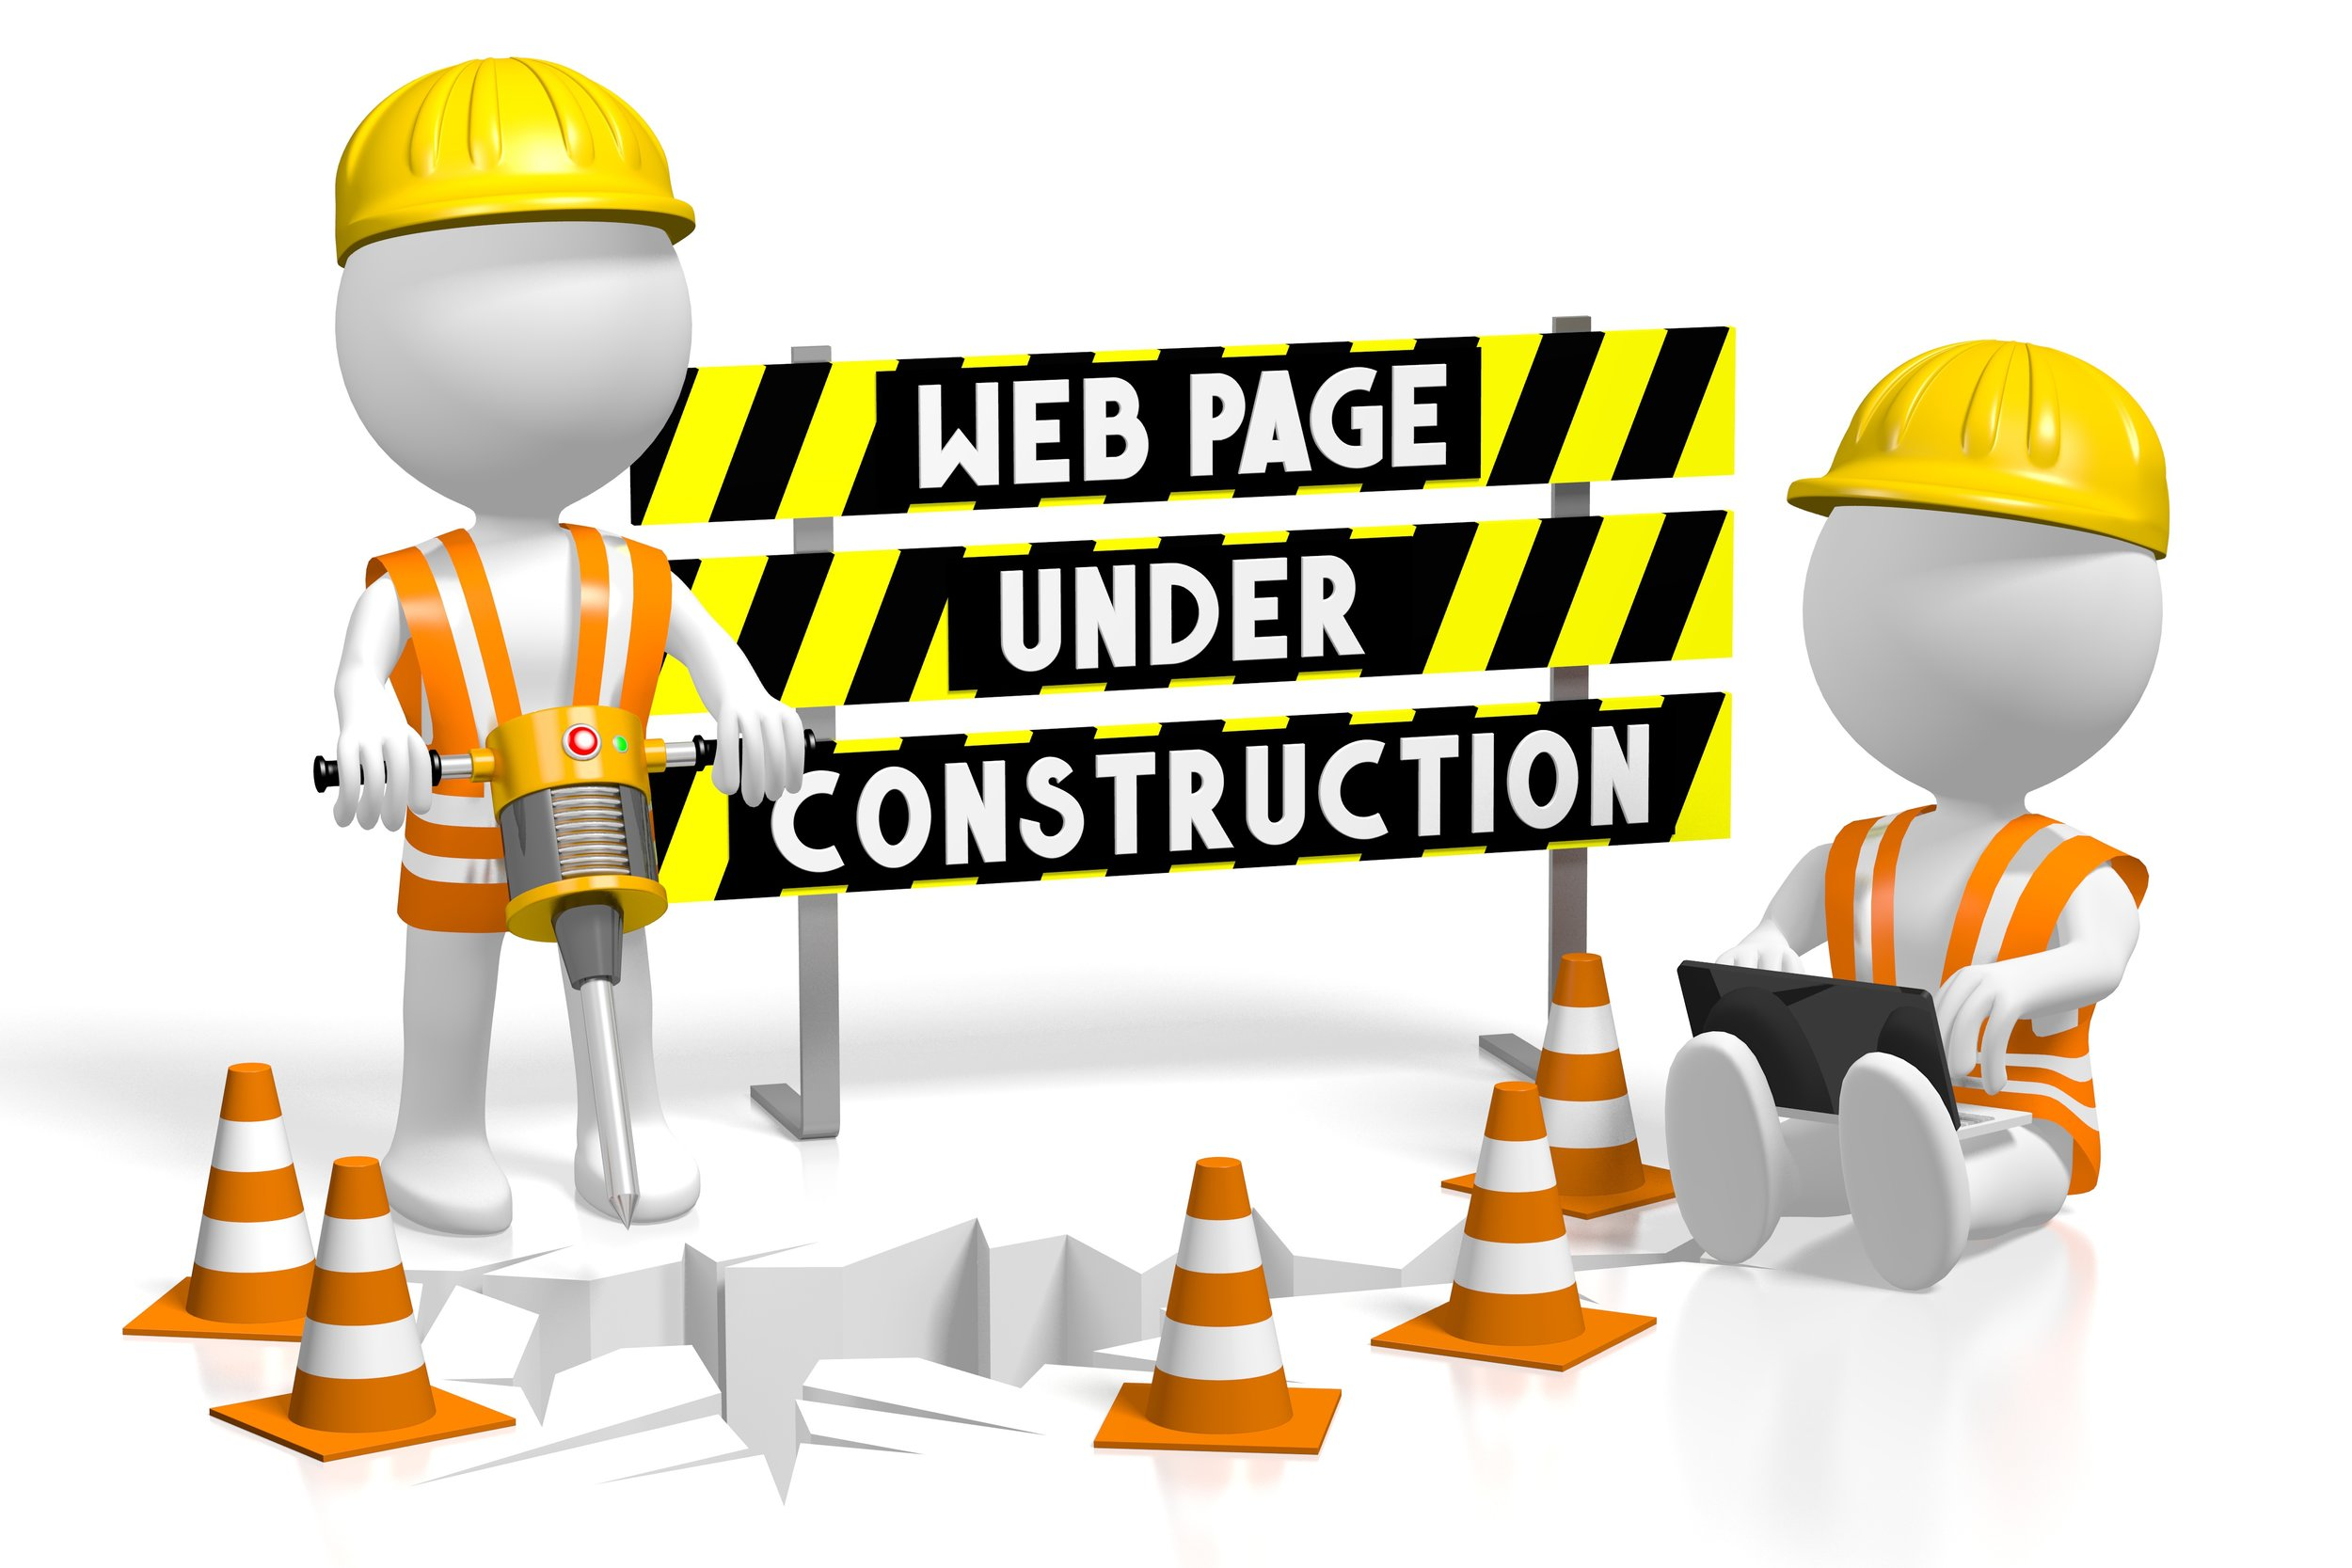 We've been working hard on our remodel, And the construction crew is almost done! - Thanks for your patience.